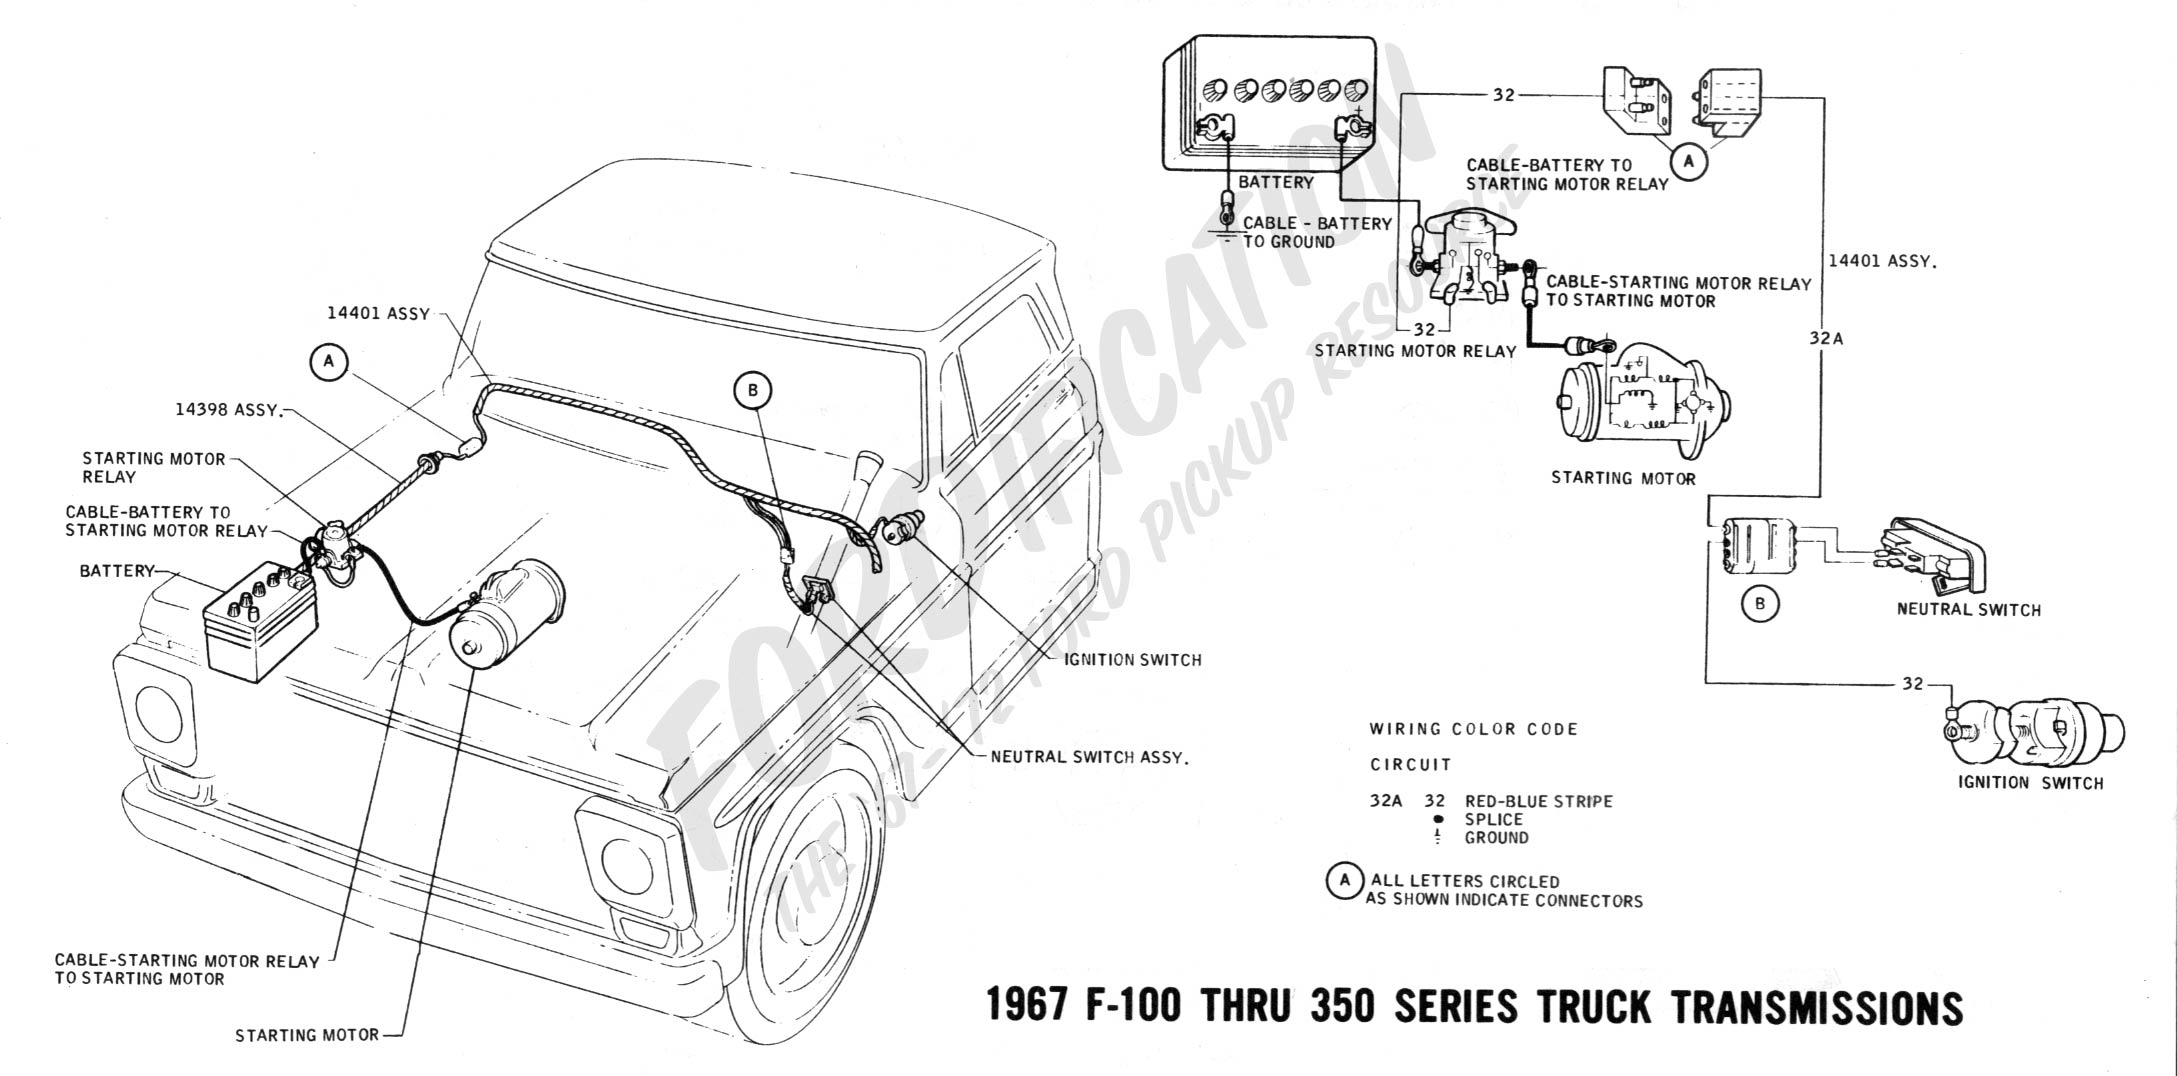 Ford Truck Brake Diagrams F700 on 78 ford bronco alternator wiring